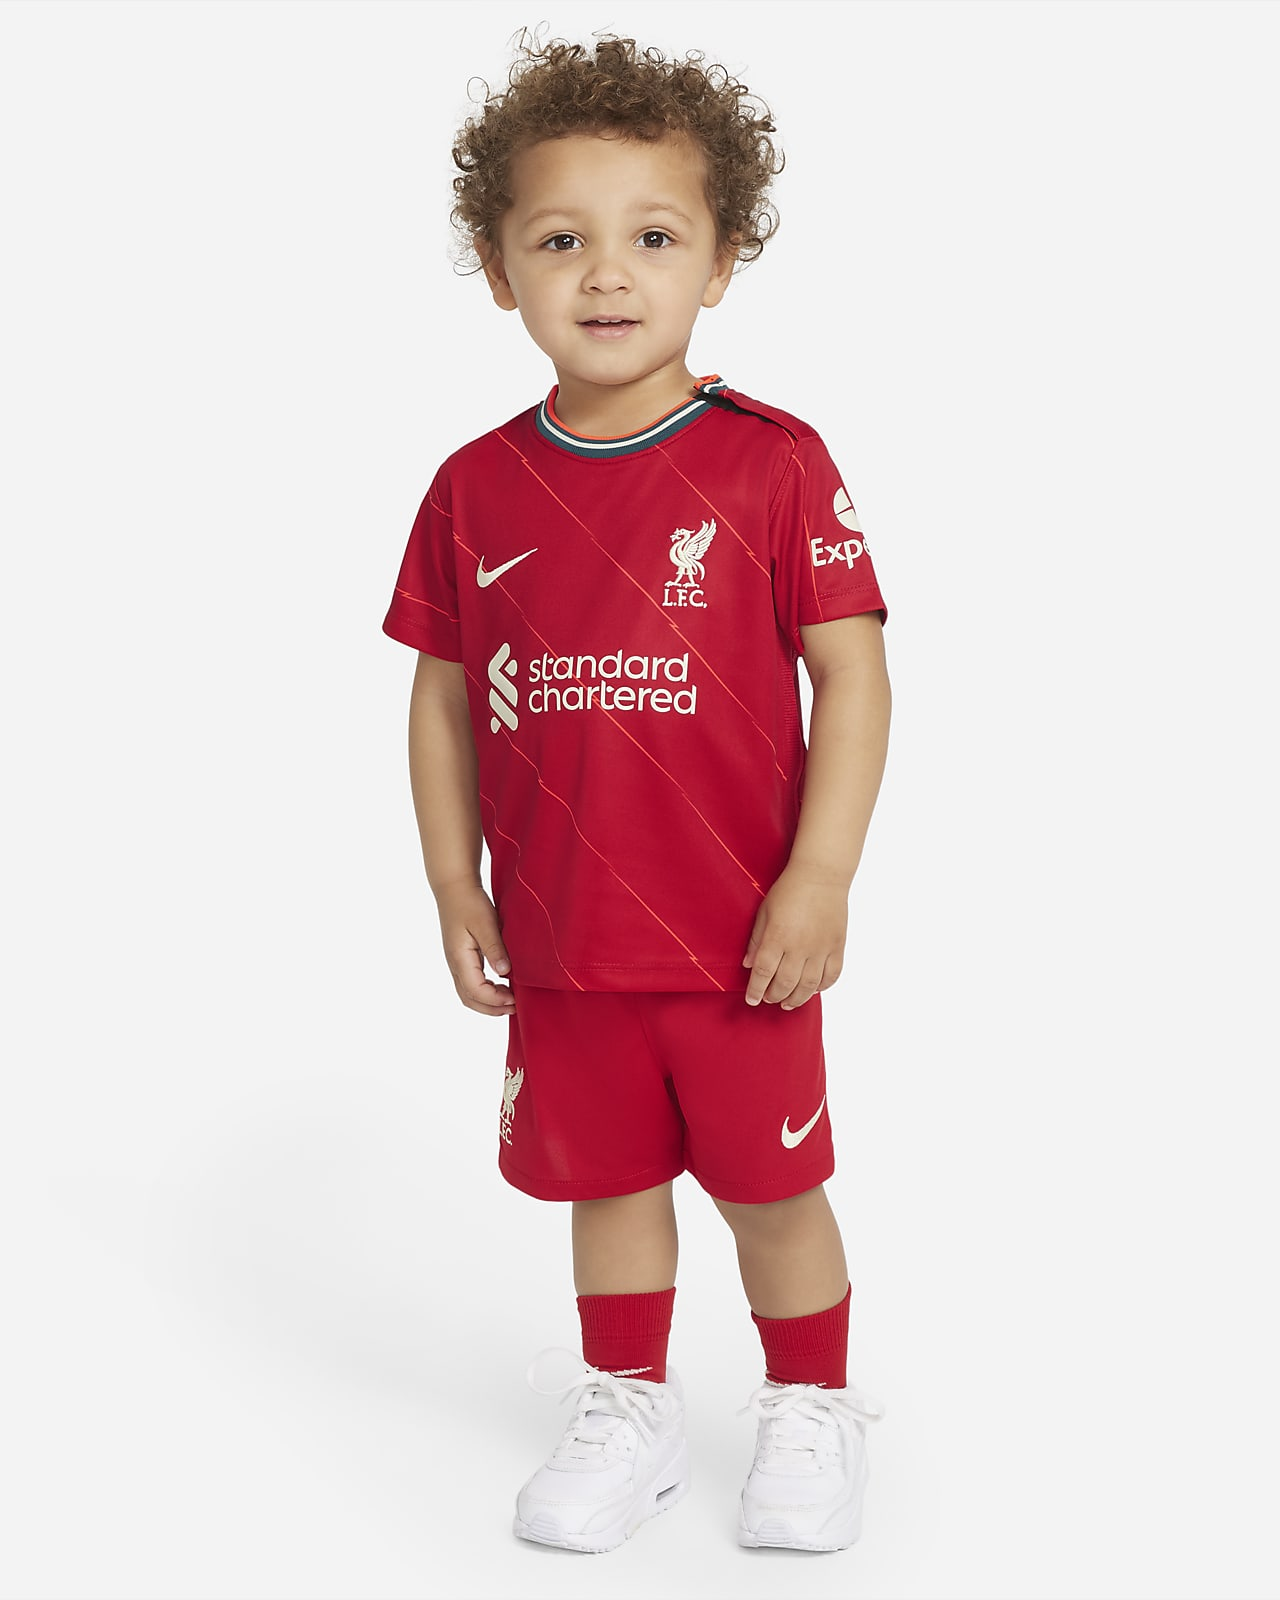 Liverpool F.C. 2021/22 Home Baby & Toddler Football Kit